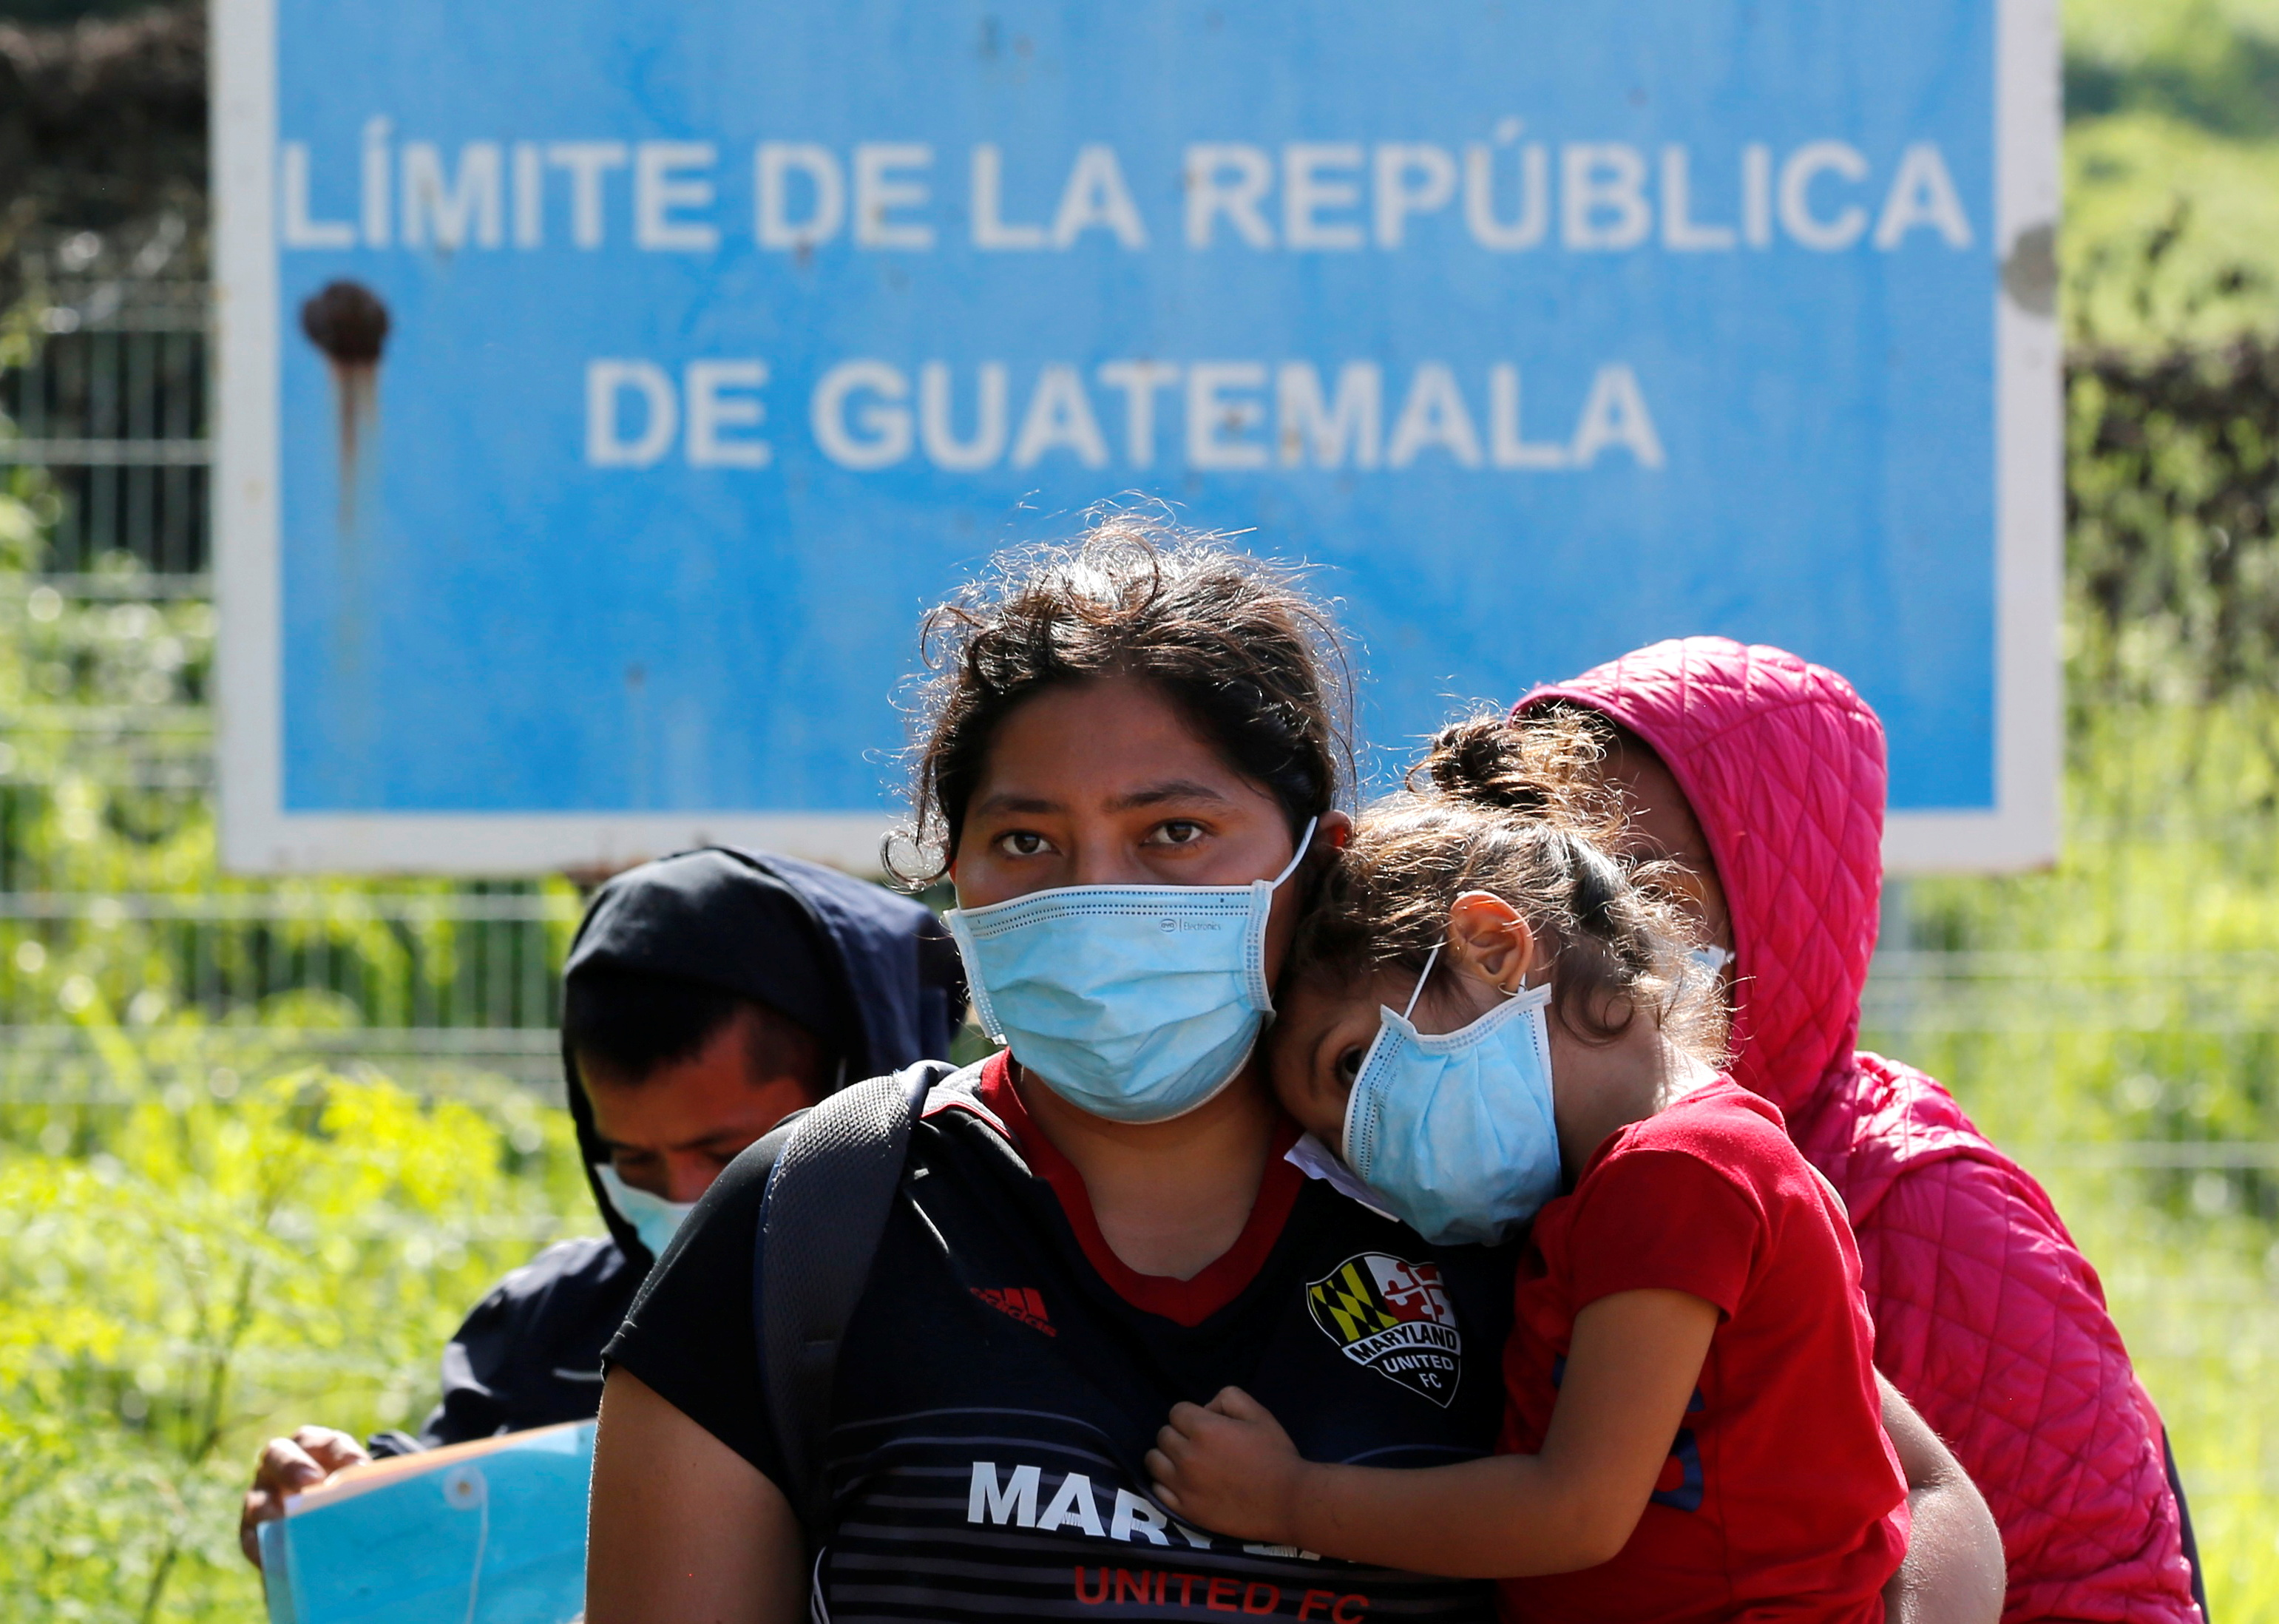 Central American migrants stand at the Mexico - Guatemala border after they were expelled by U.S. and Mexican officials, in El Ceibo, Guatemala August 15, 2021. The sign reads